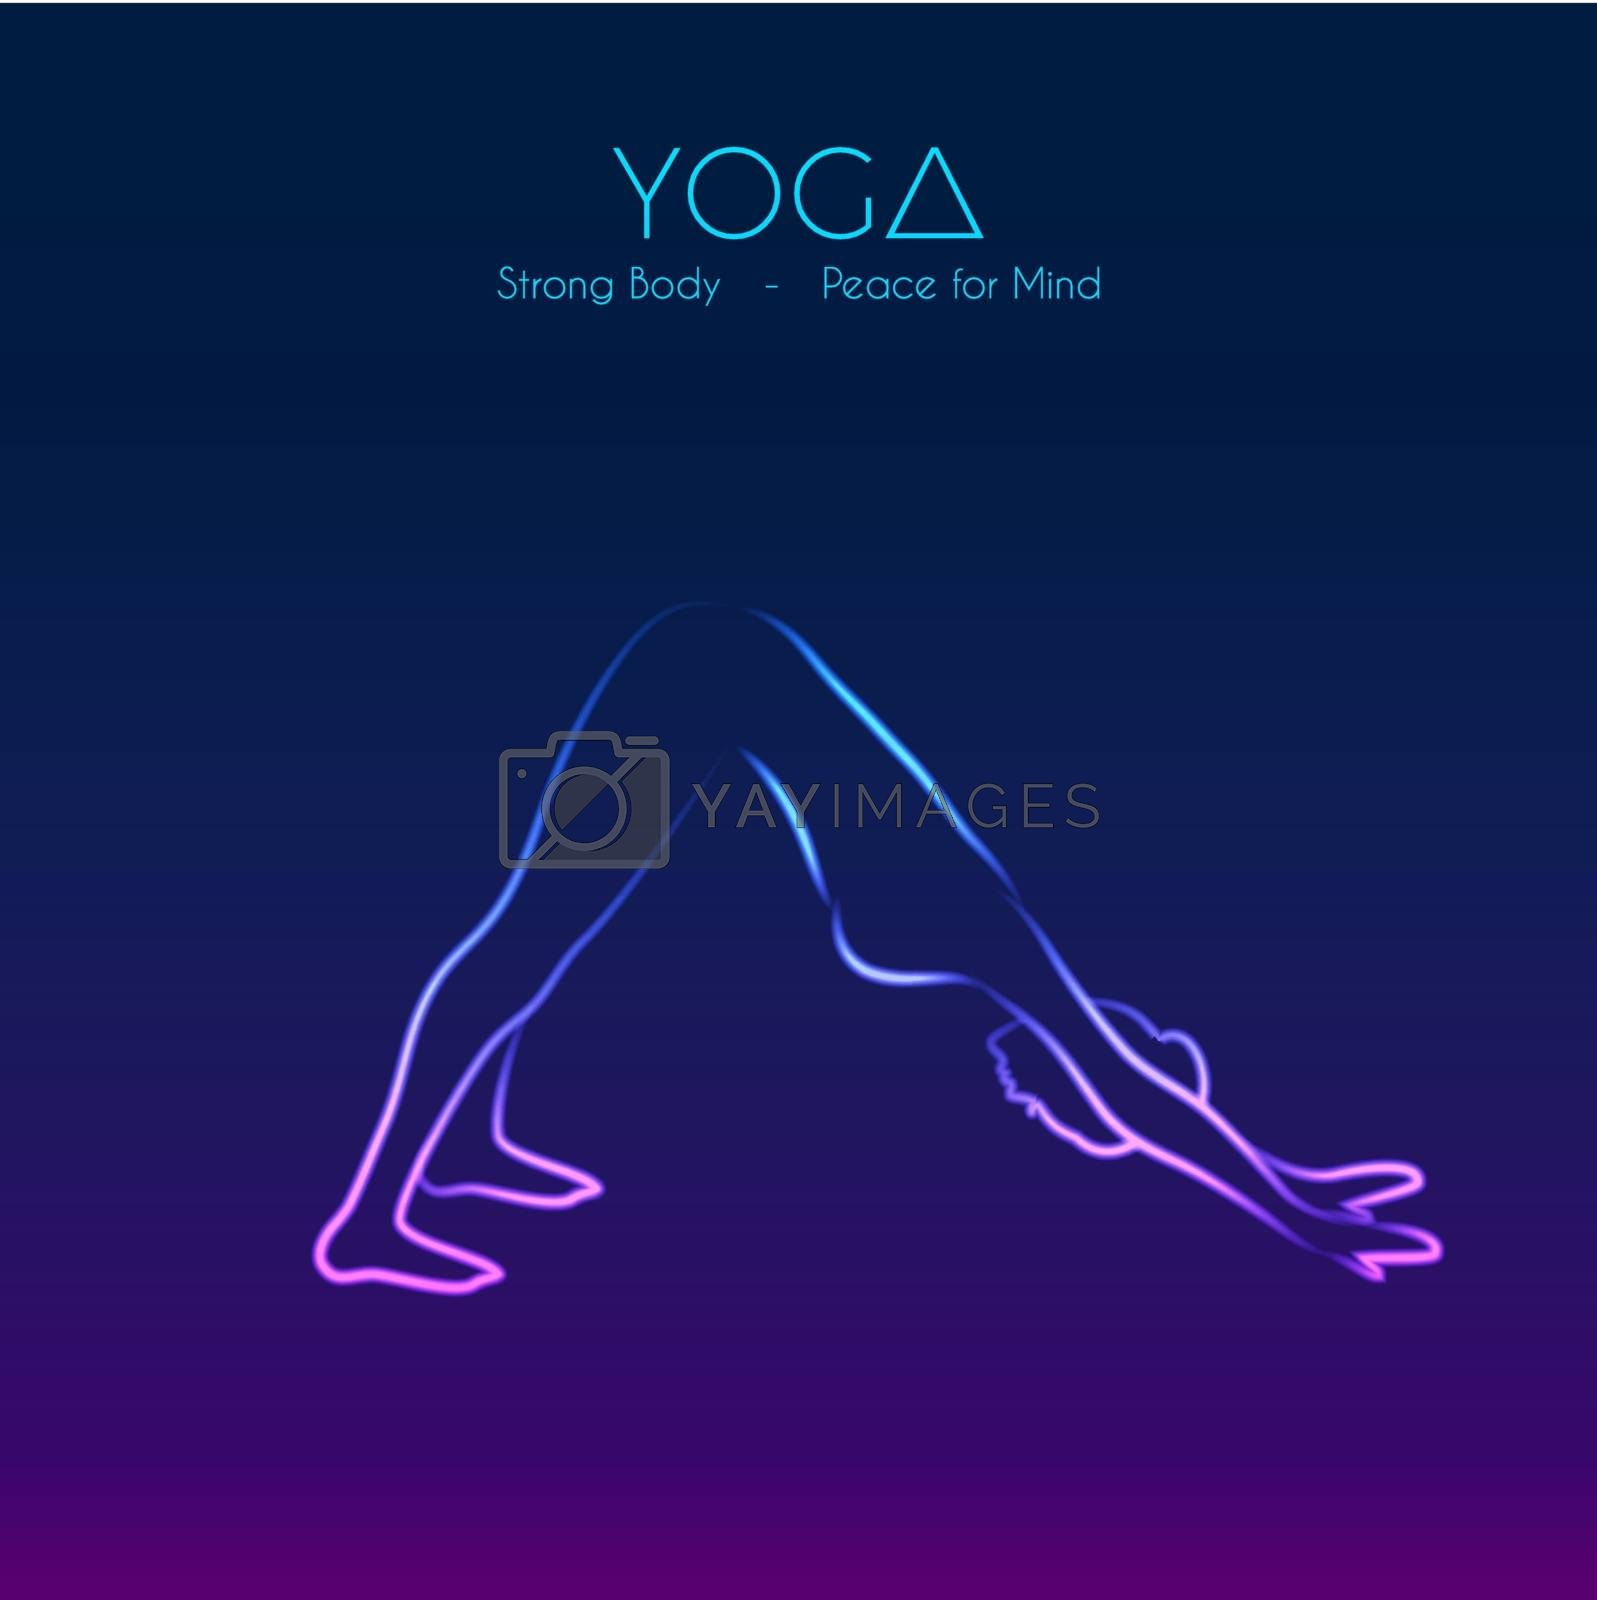 Vector illustration of Yoga pose woman's silhouette